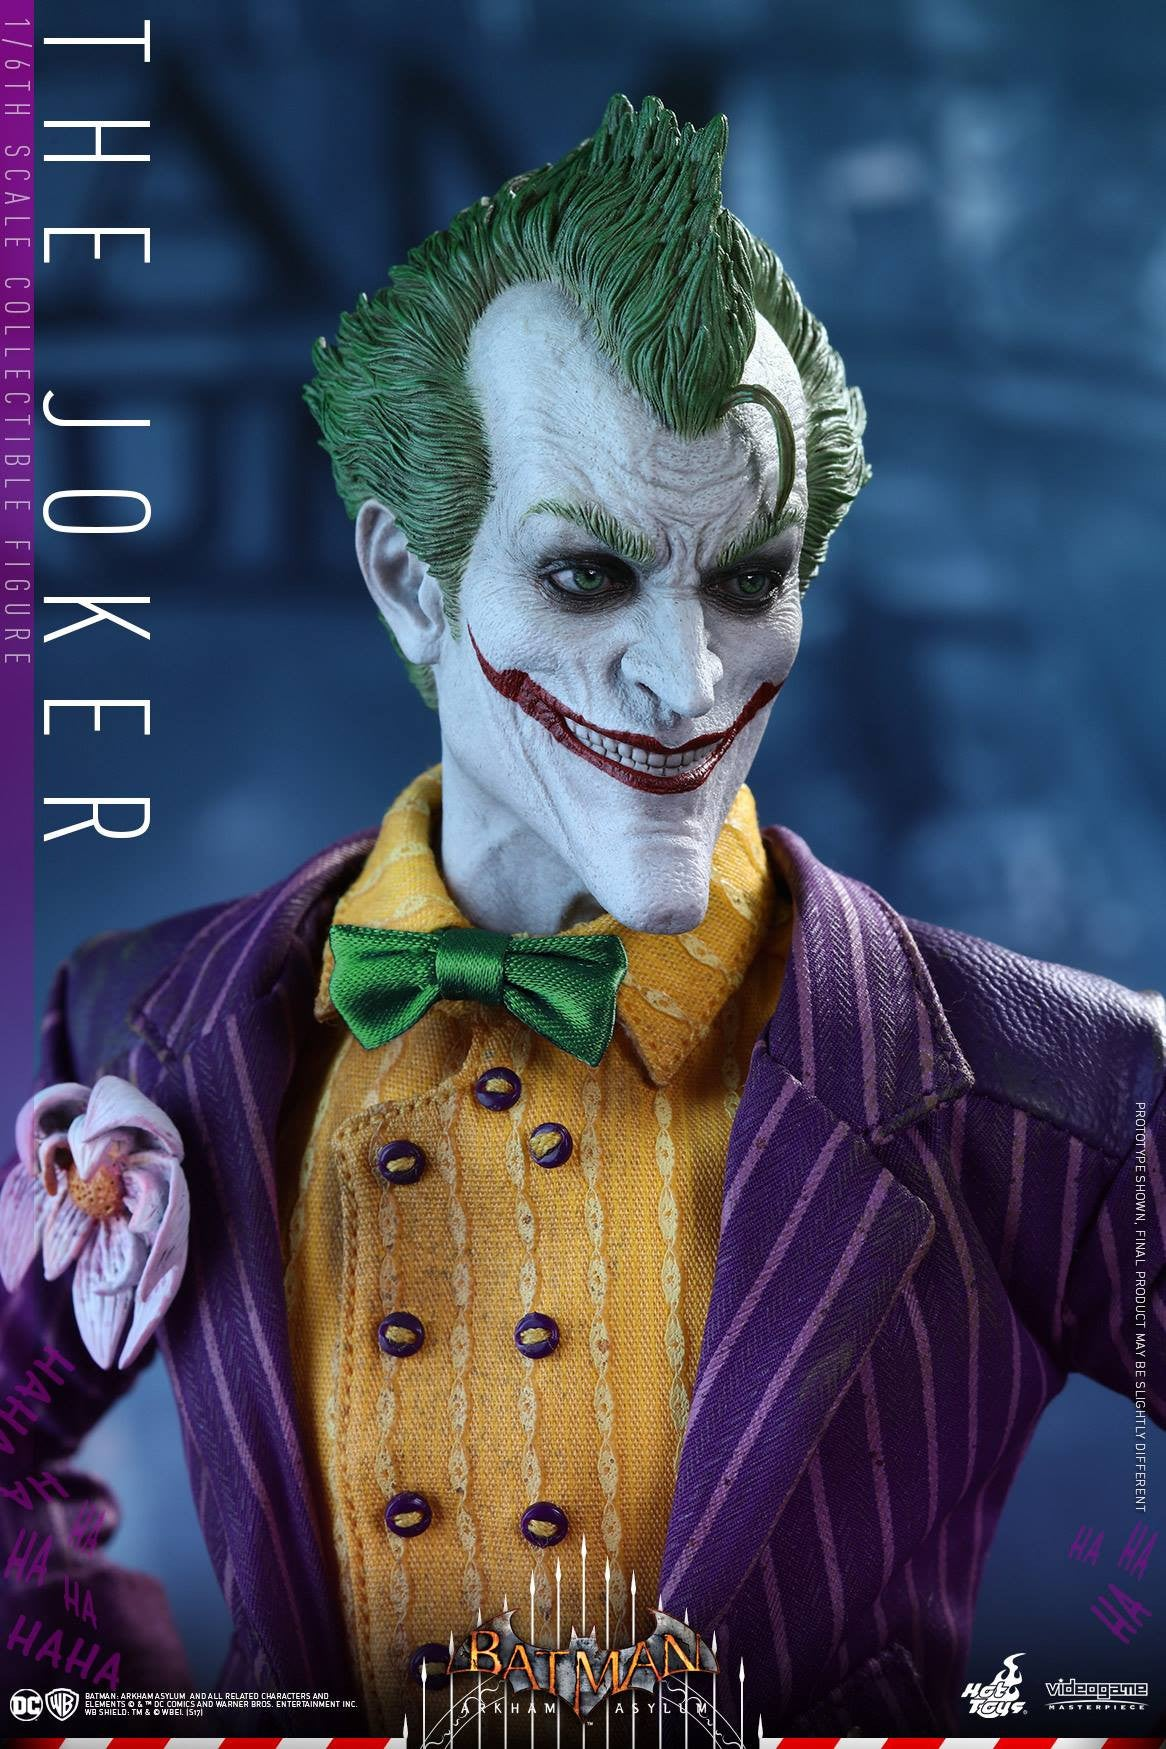 Hot Toys - VGM27 - Batman: Arkham Asylum - The Joker - Marvelous Toys - 18